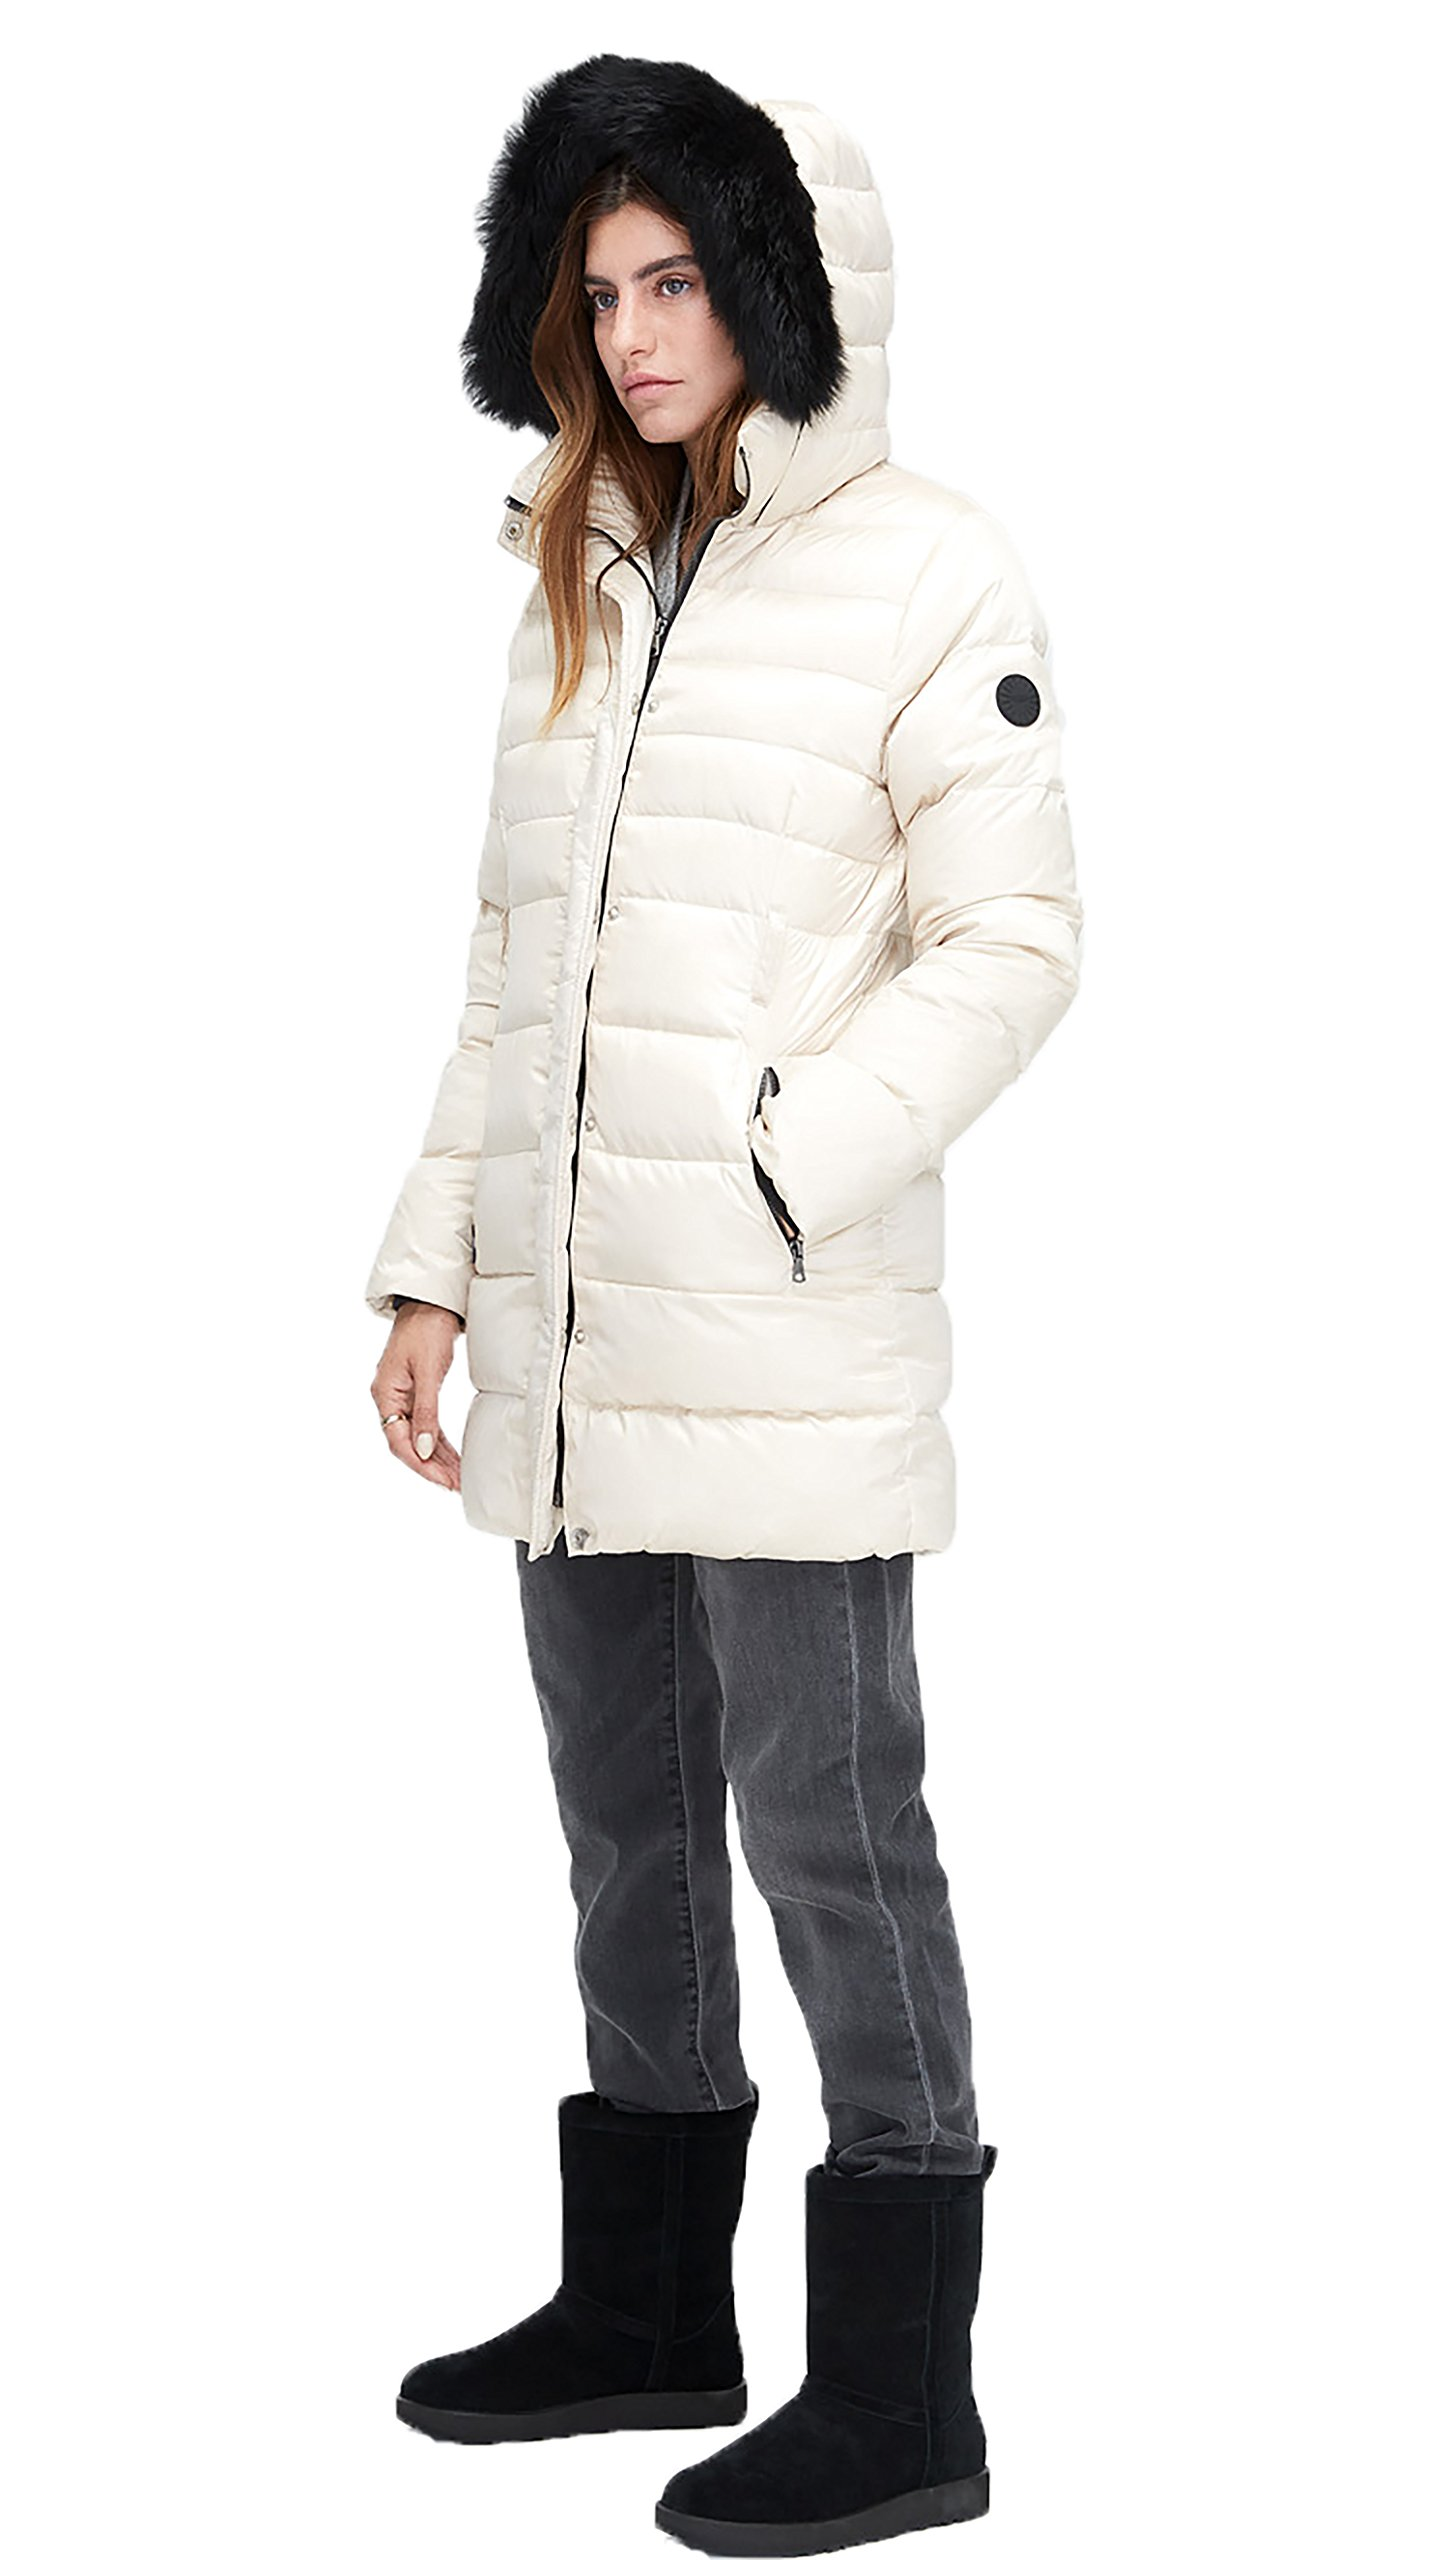 UGG Women's Belted Down Jacket In Powder, m by UGG